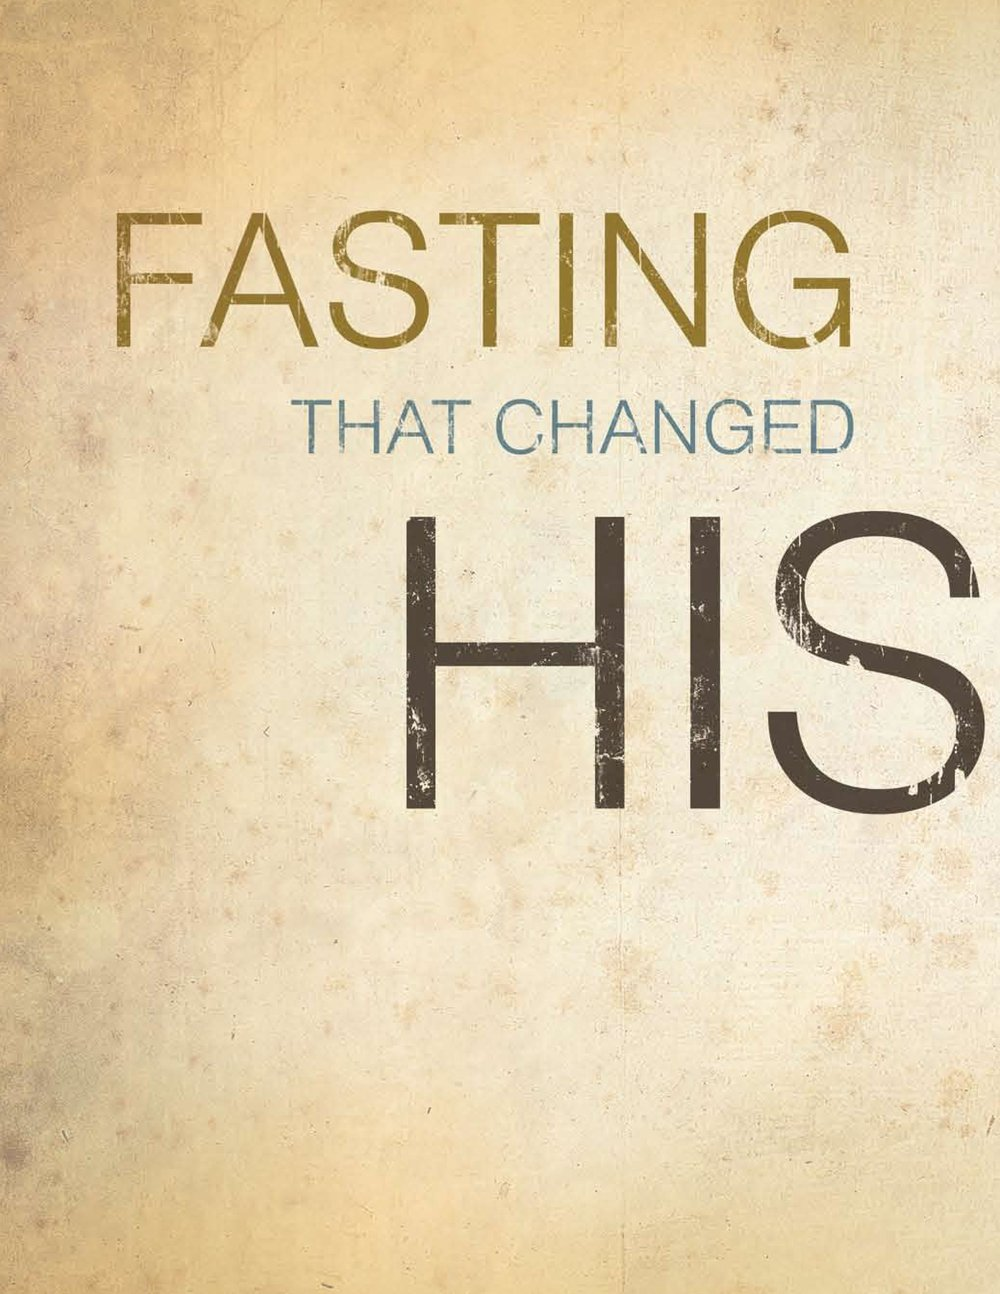 Fasting-That-Changed-History-page-001.jpg